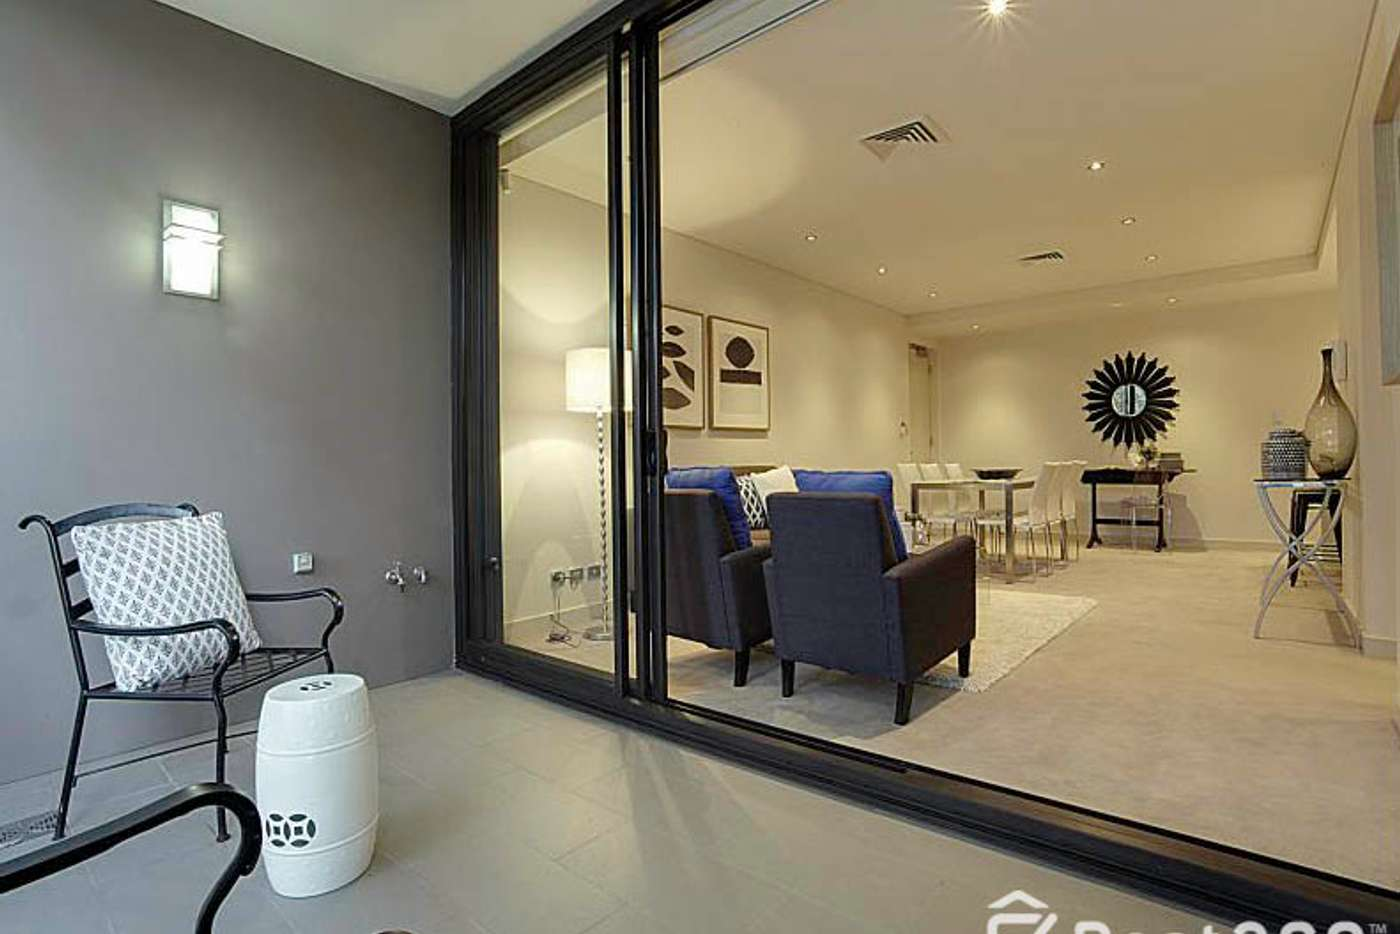 Main view of Homely apartment listing, 39/1 Newhaven Place, St Ives NSW 2075